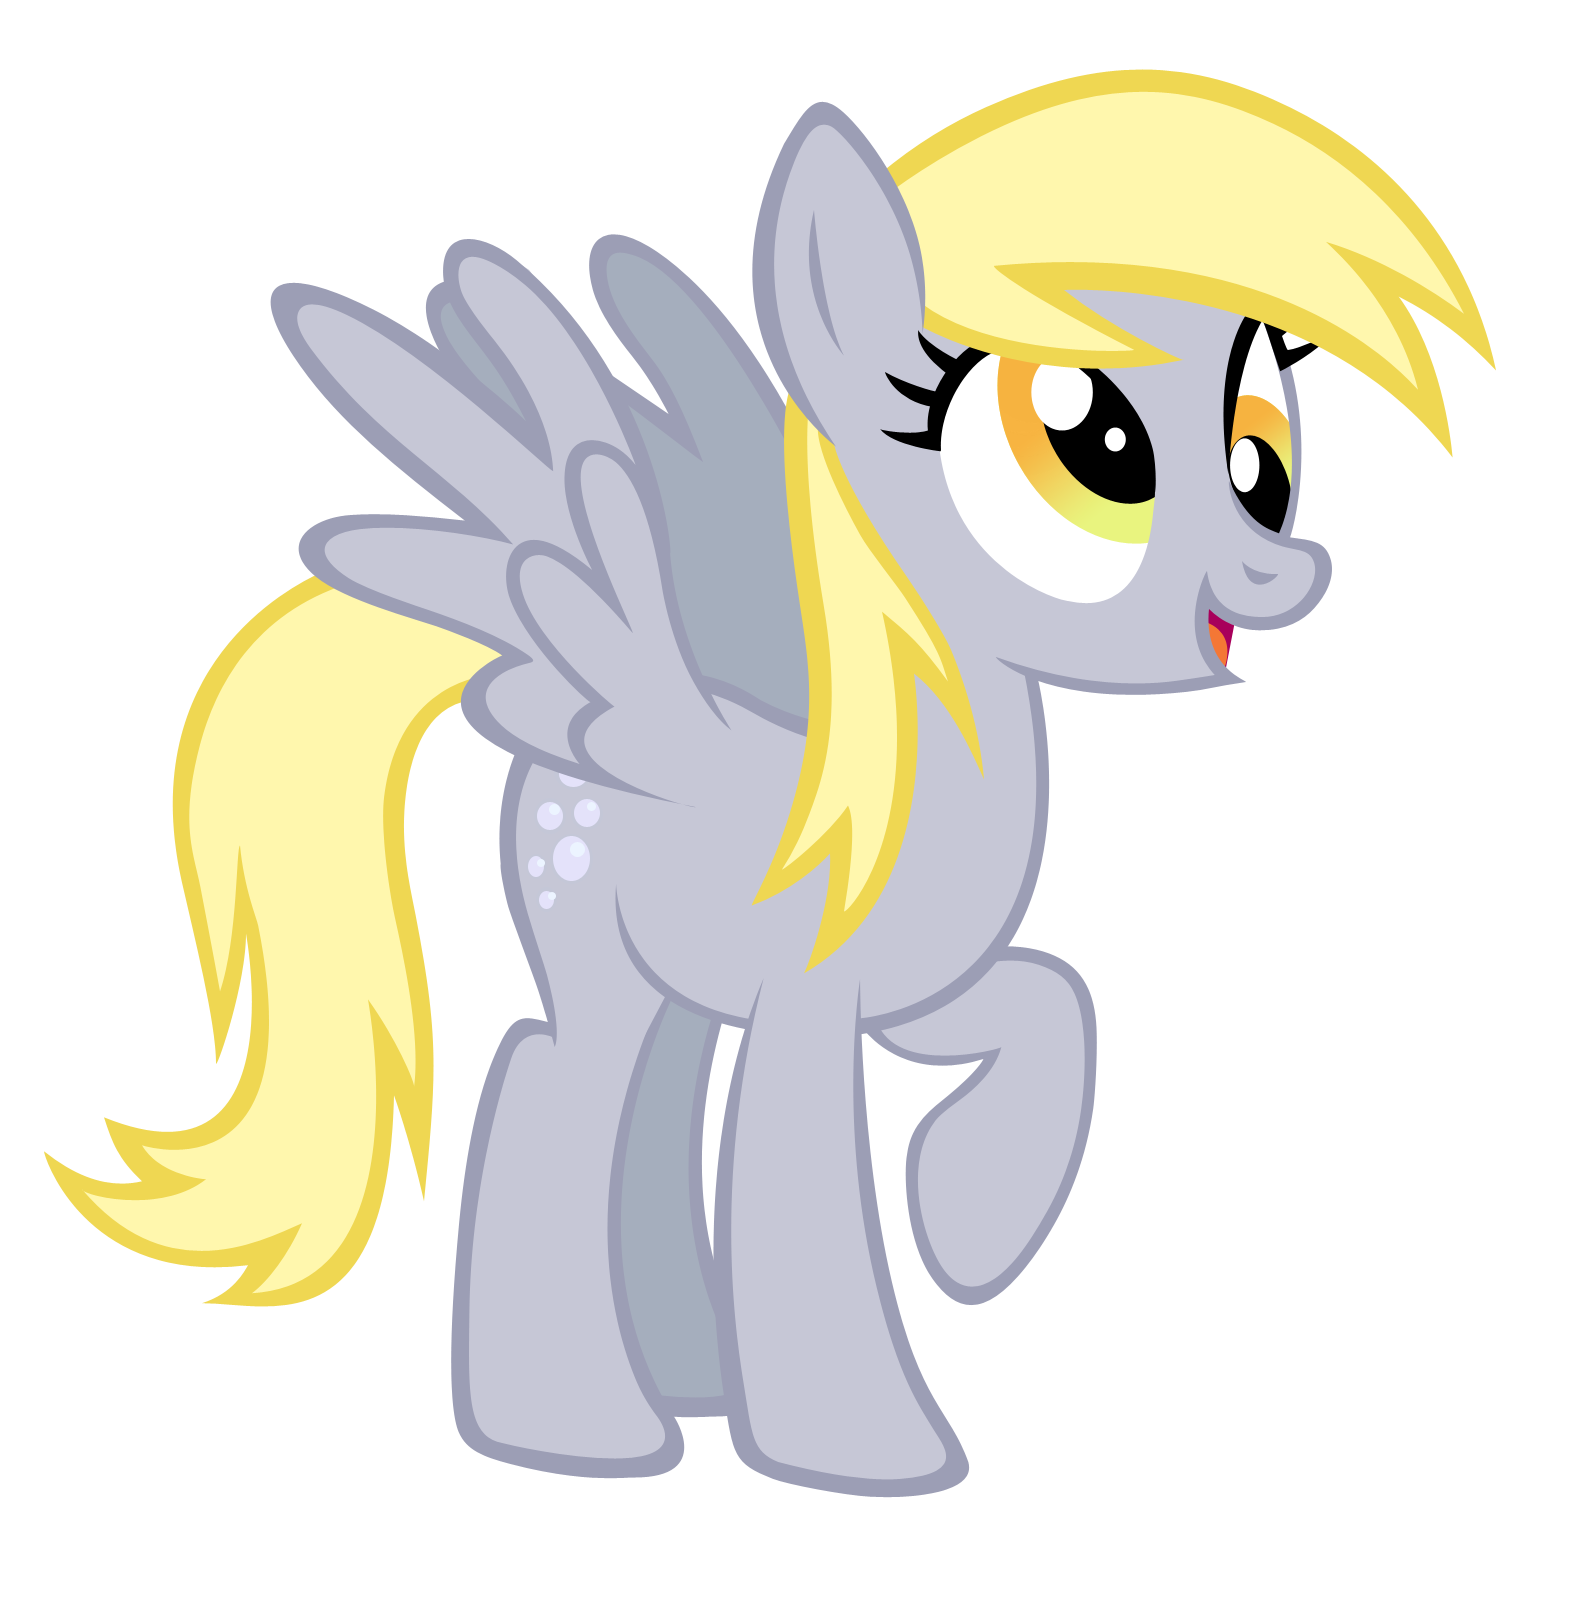 ... Hooves vector by durpy.png - My Little Pony Friendship is Magic Wiki